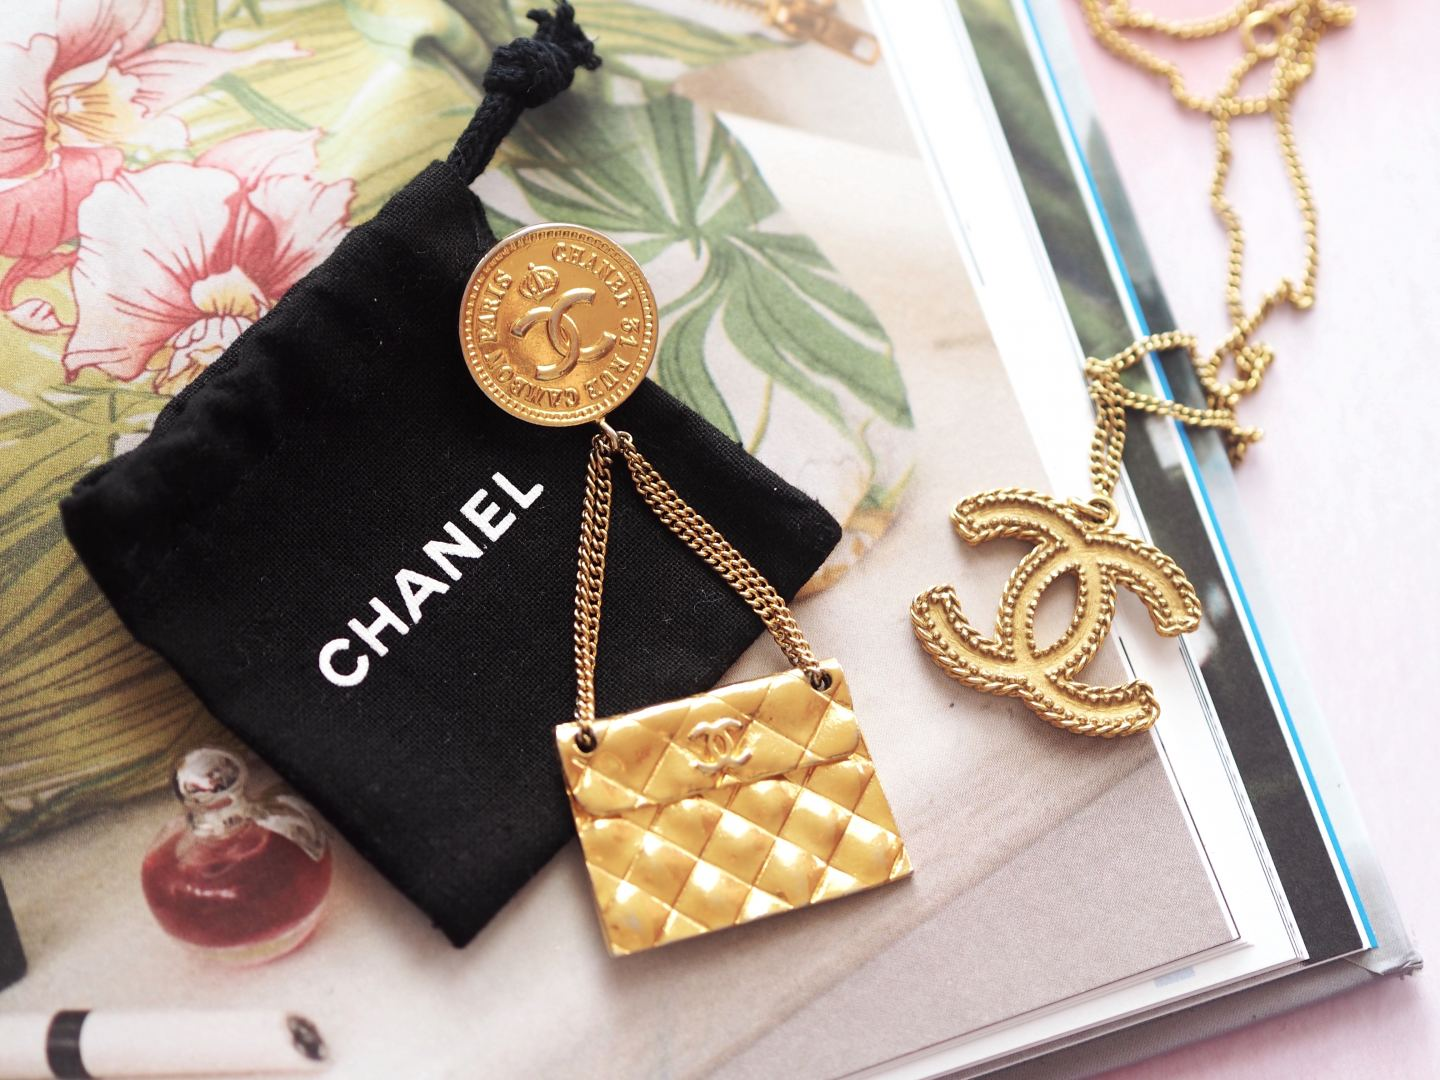 chanel handbag brooch vintage gold tone